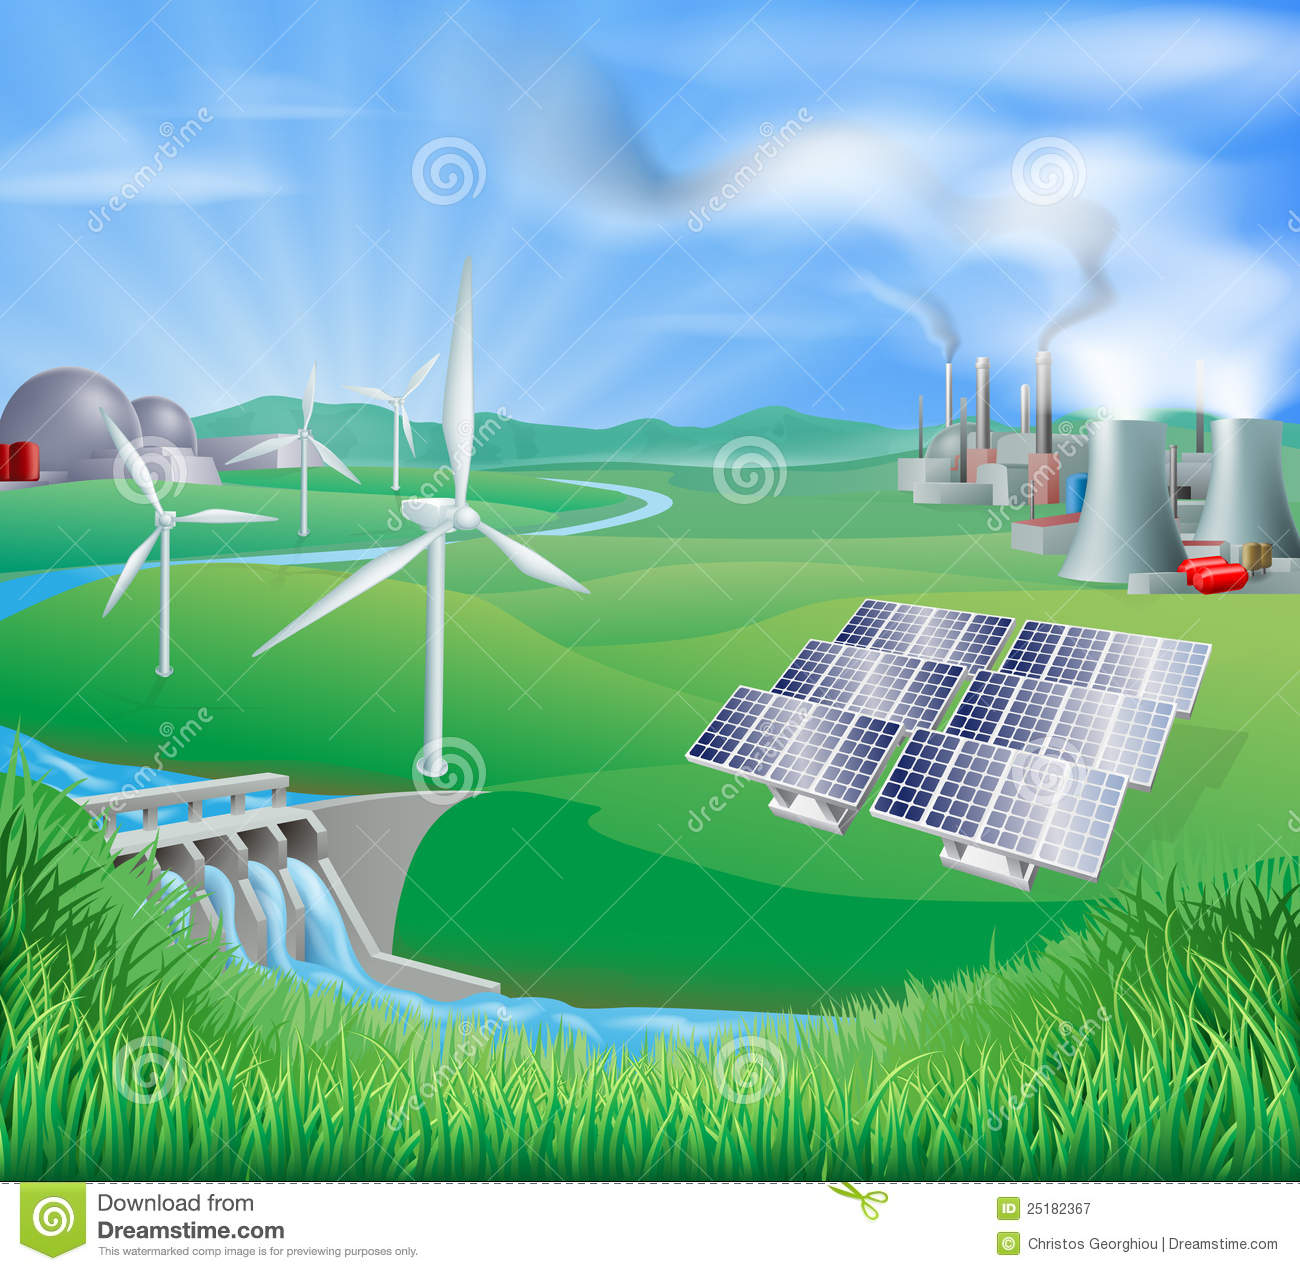 ... energy or sustainable energy sources such as wind power or wind